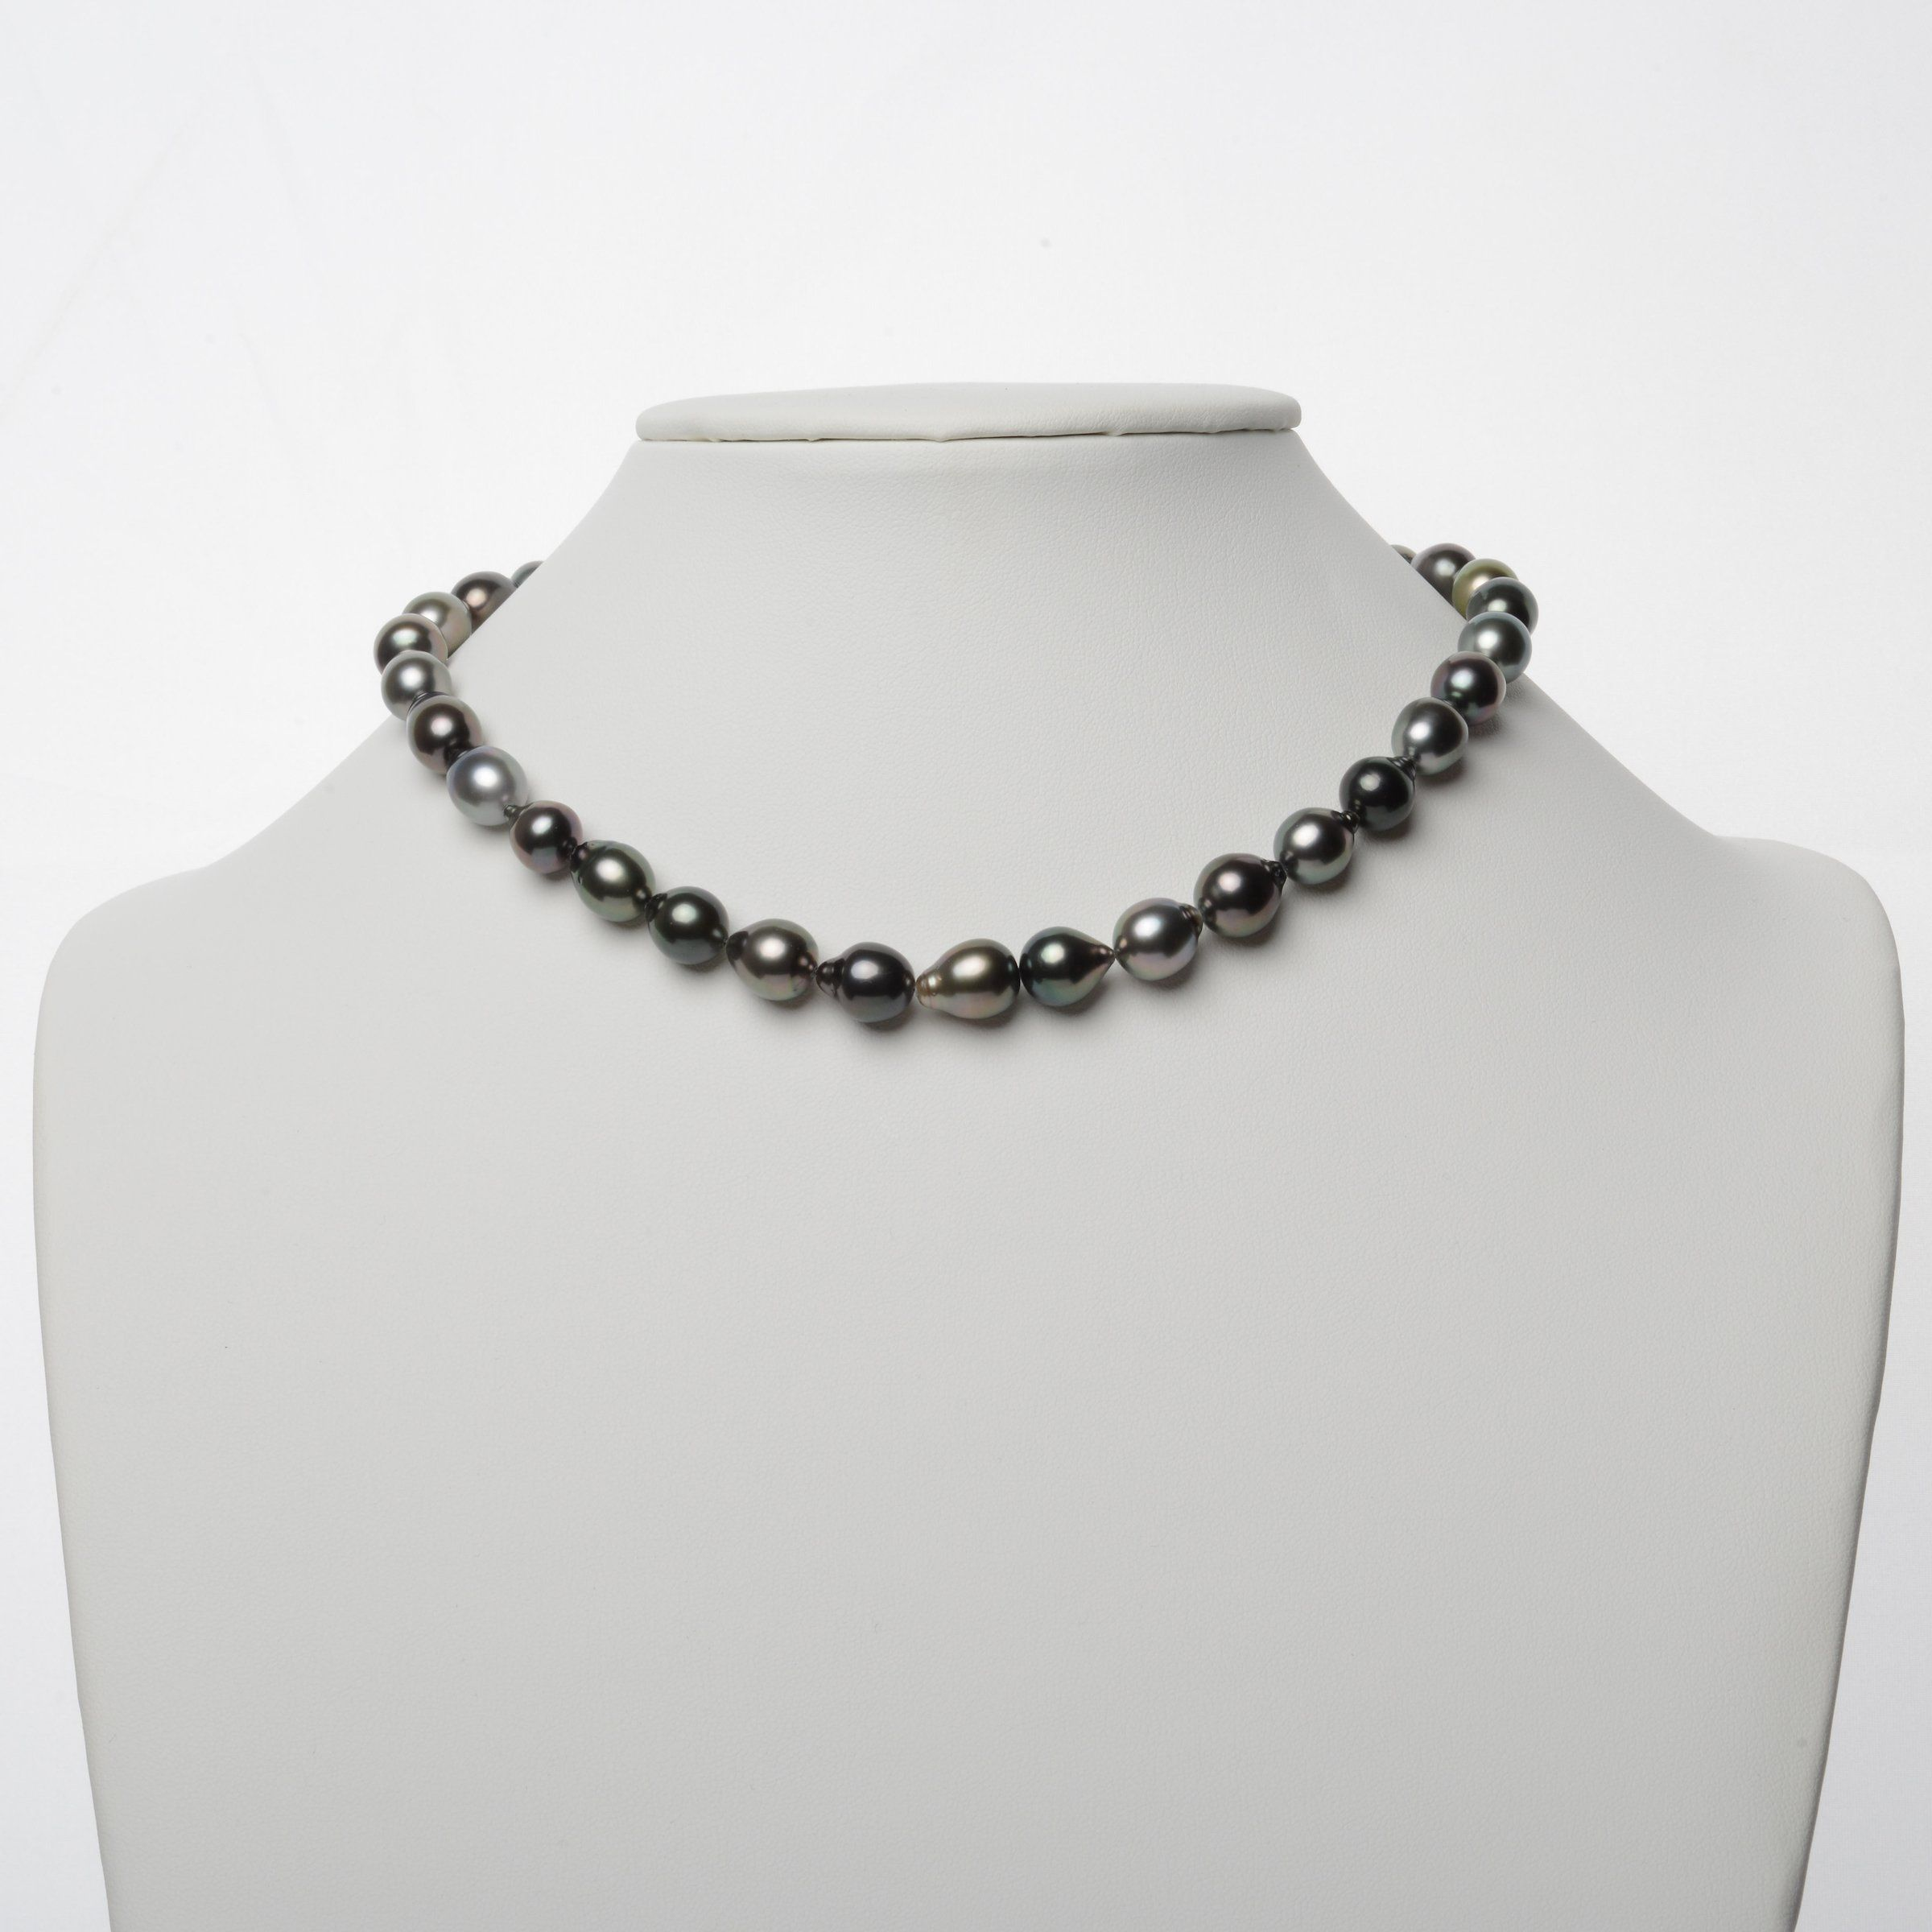 8.6-10.3 mm AAA Tahitian Drop Pearl Necklace